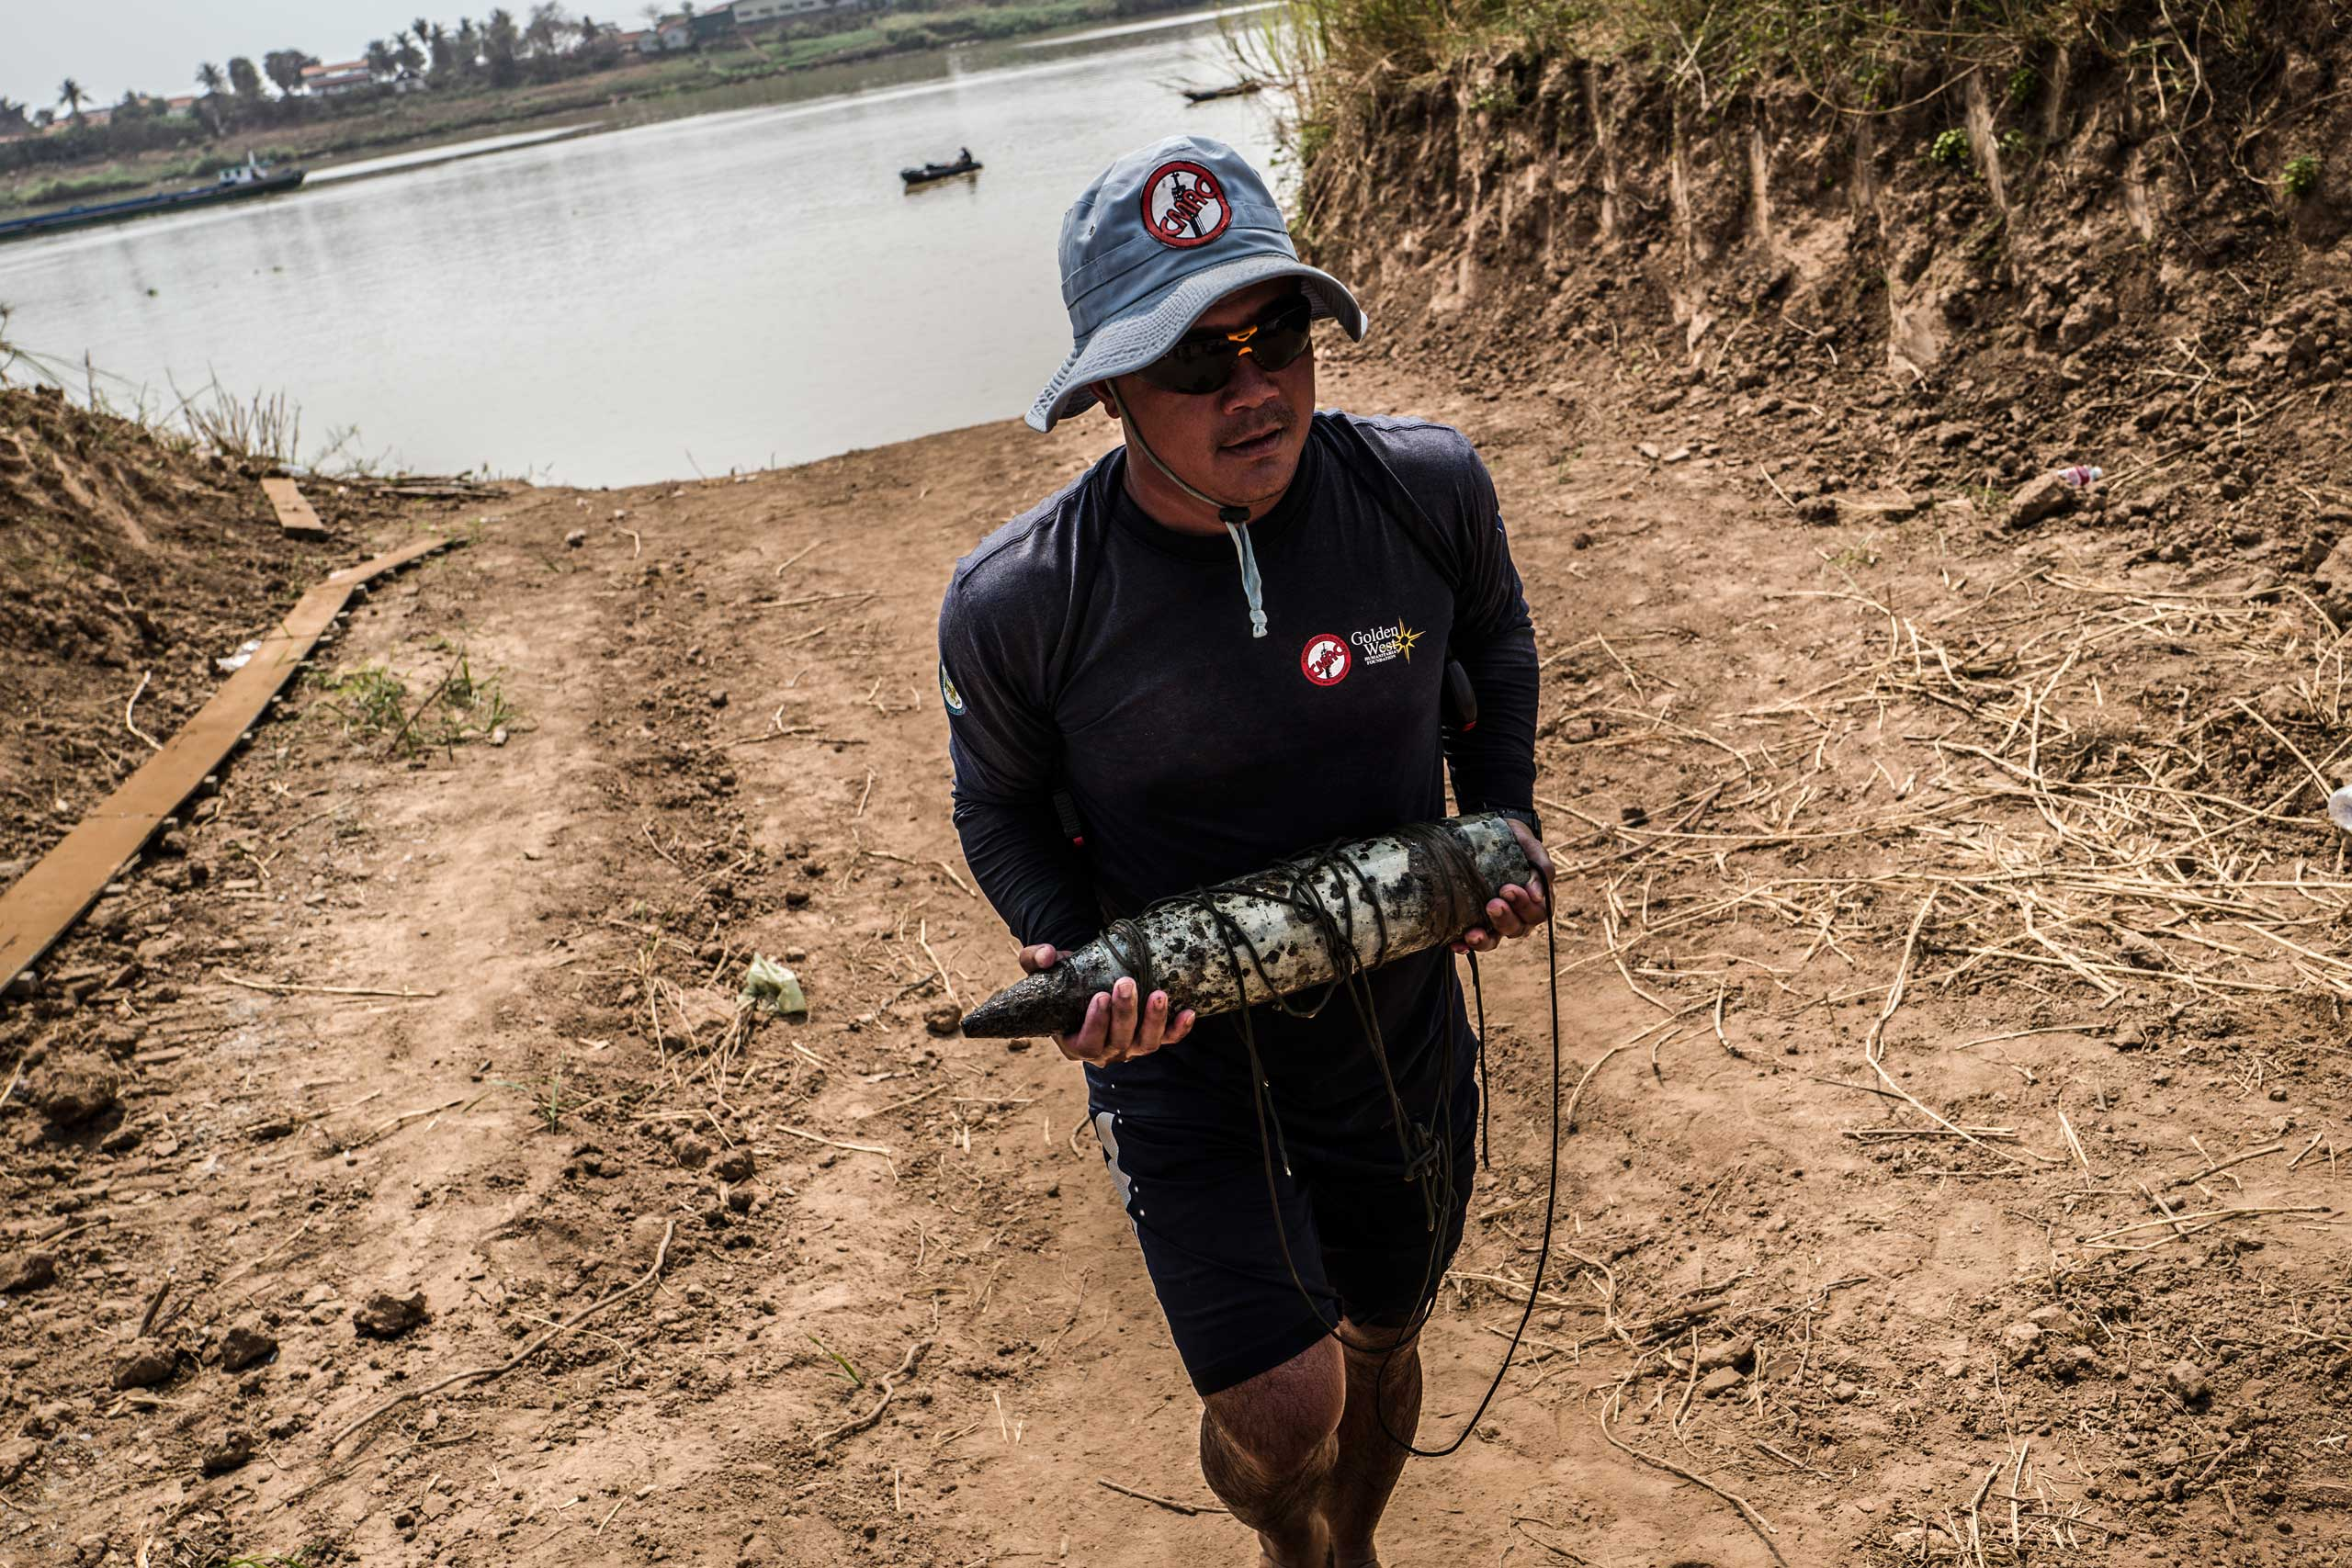 Team Leader Sok Chenda carries a 105mm round from the banks of the Tonle Sap River in March 2016. The team was informed of the round whilst conducting reconnaissance in the area.